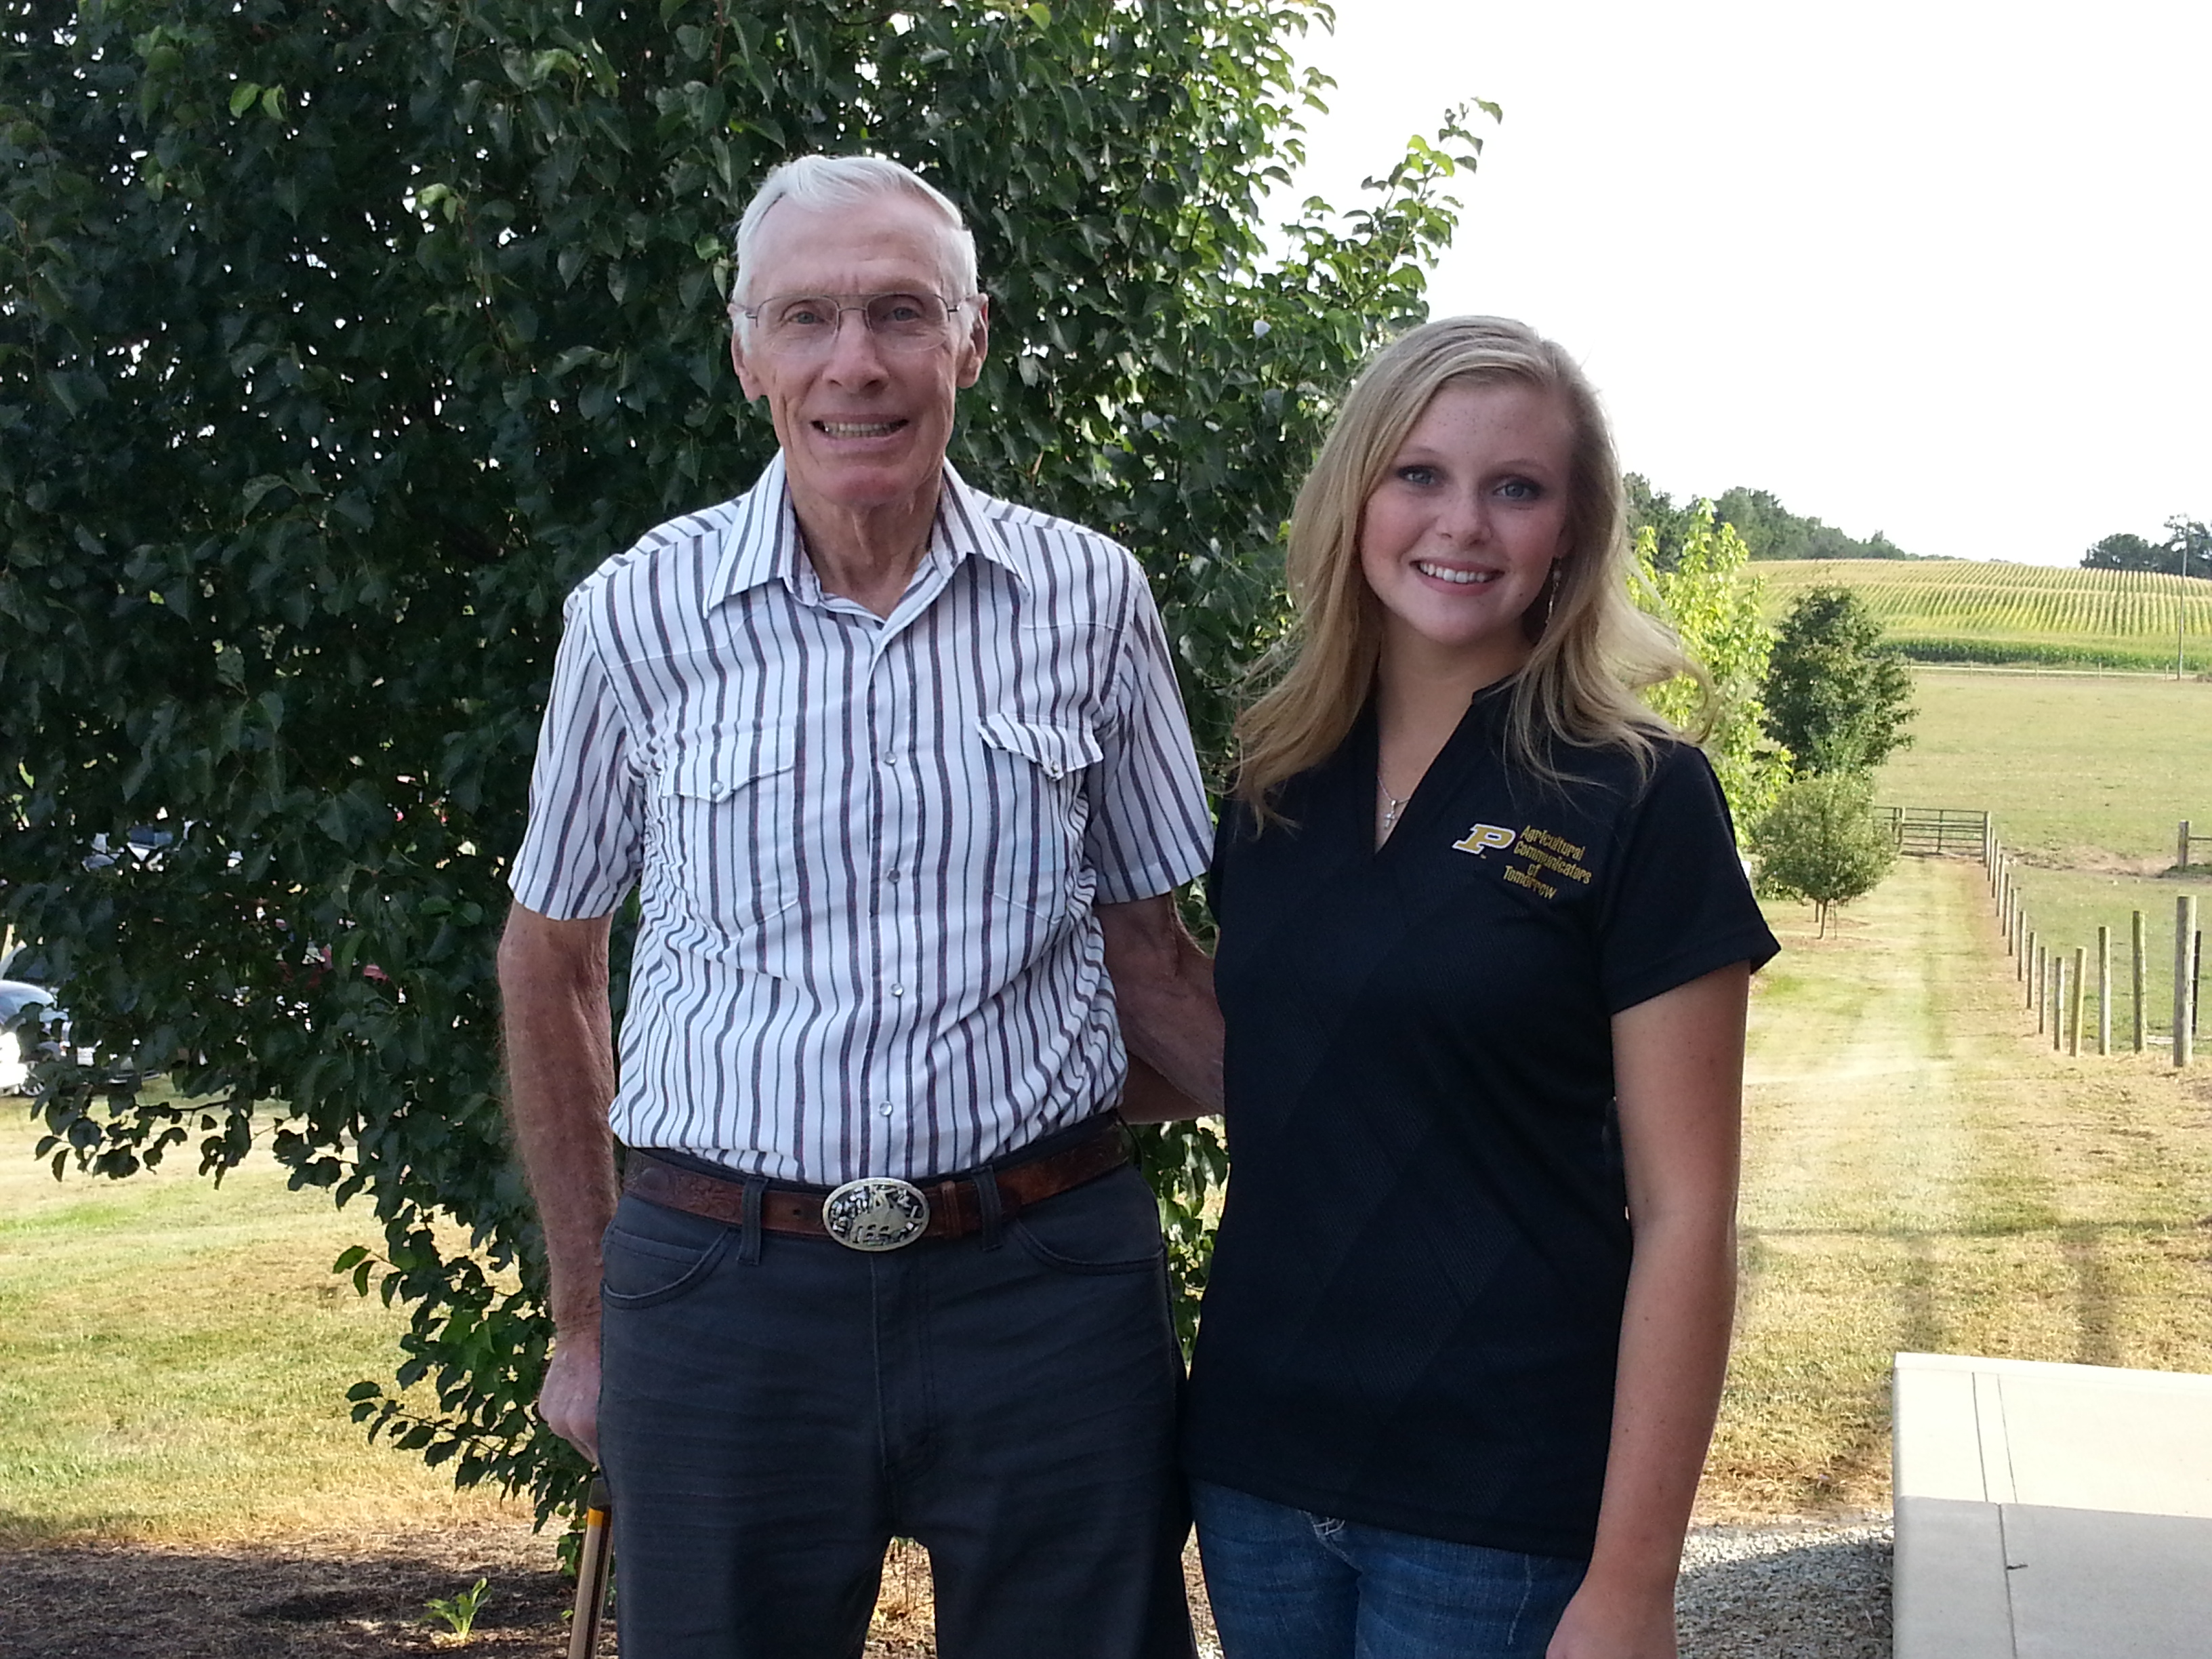 Leon and Hannah Tucker spoke at the annual Beef Twilight Tour at Conley Farms on Saturday, Aug. 22. (Photo by Alyssa Richardson)